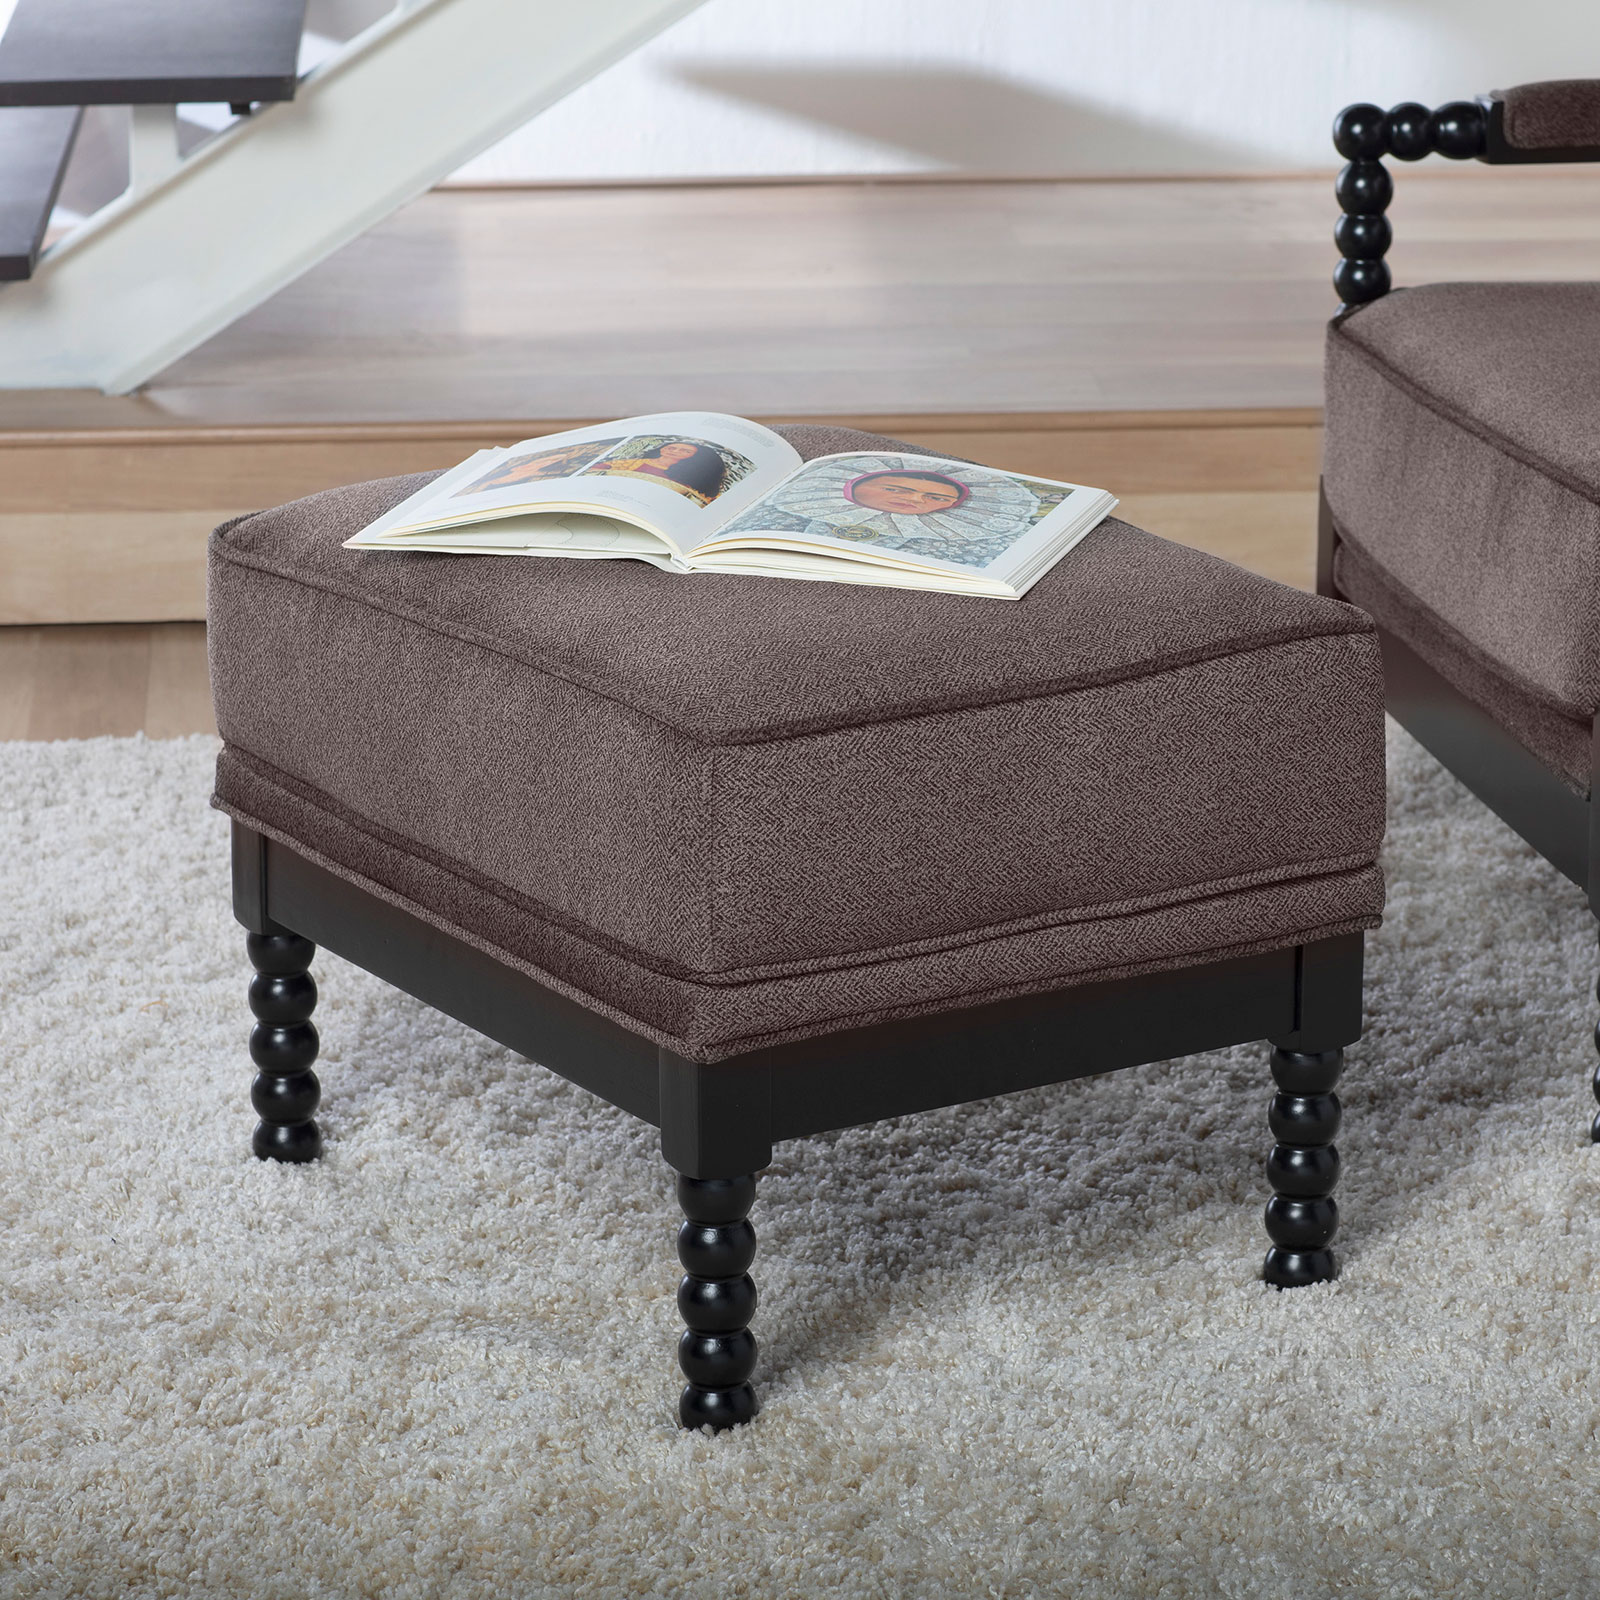 72038-Colonnade-Spindle-Ottoman-RS1b